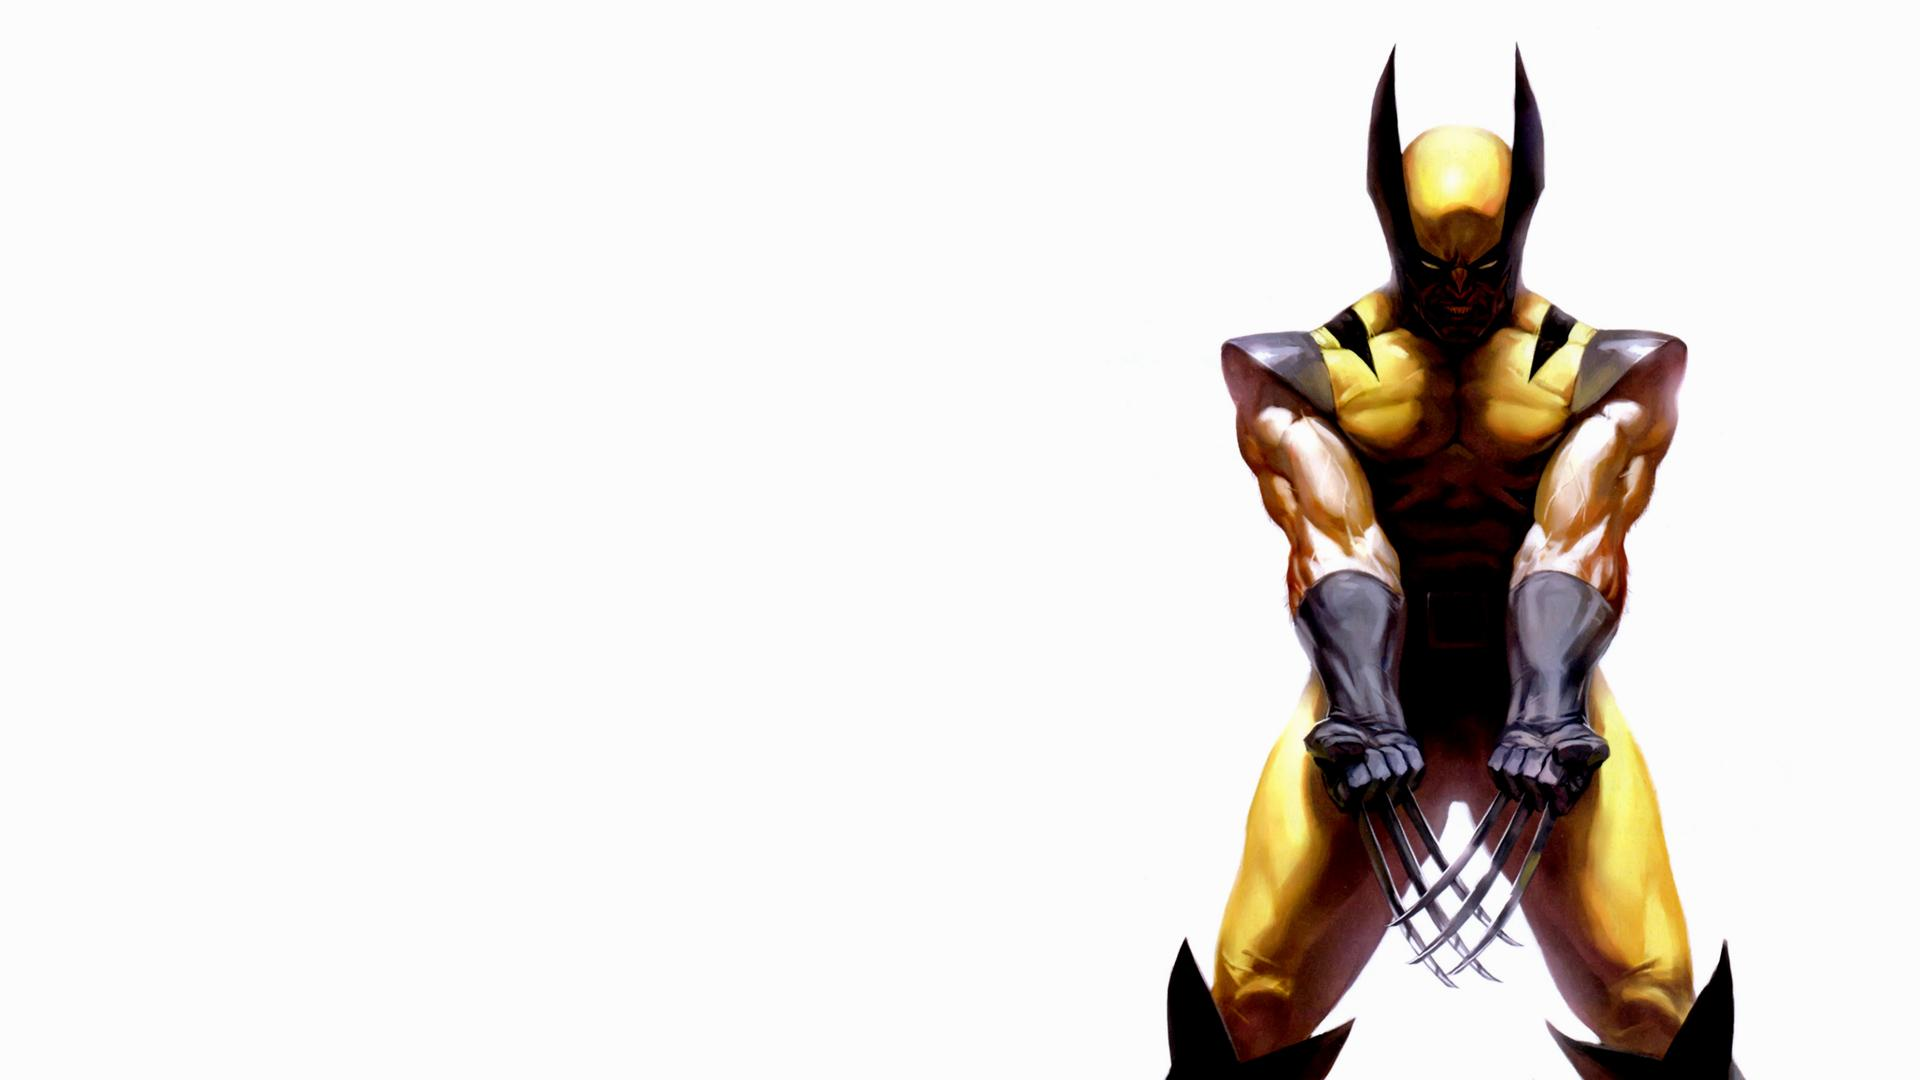 Wolverine Hd Wallpapers Backgrounds For Free Download 1920x1080